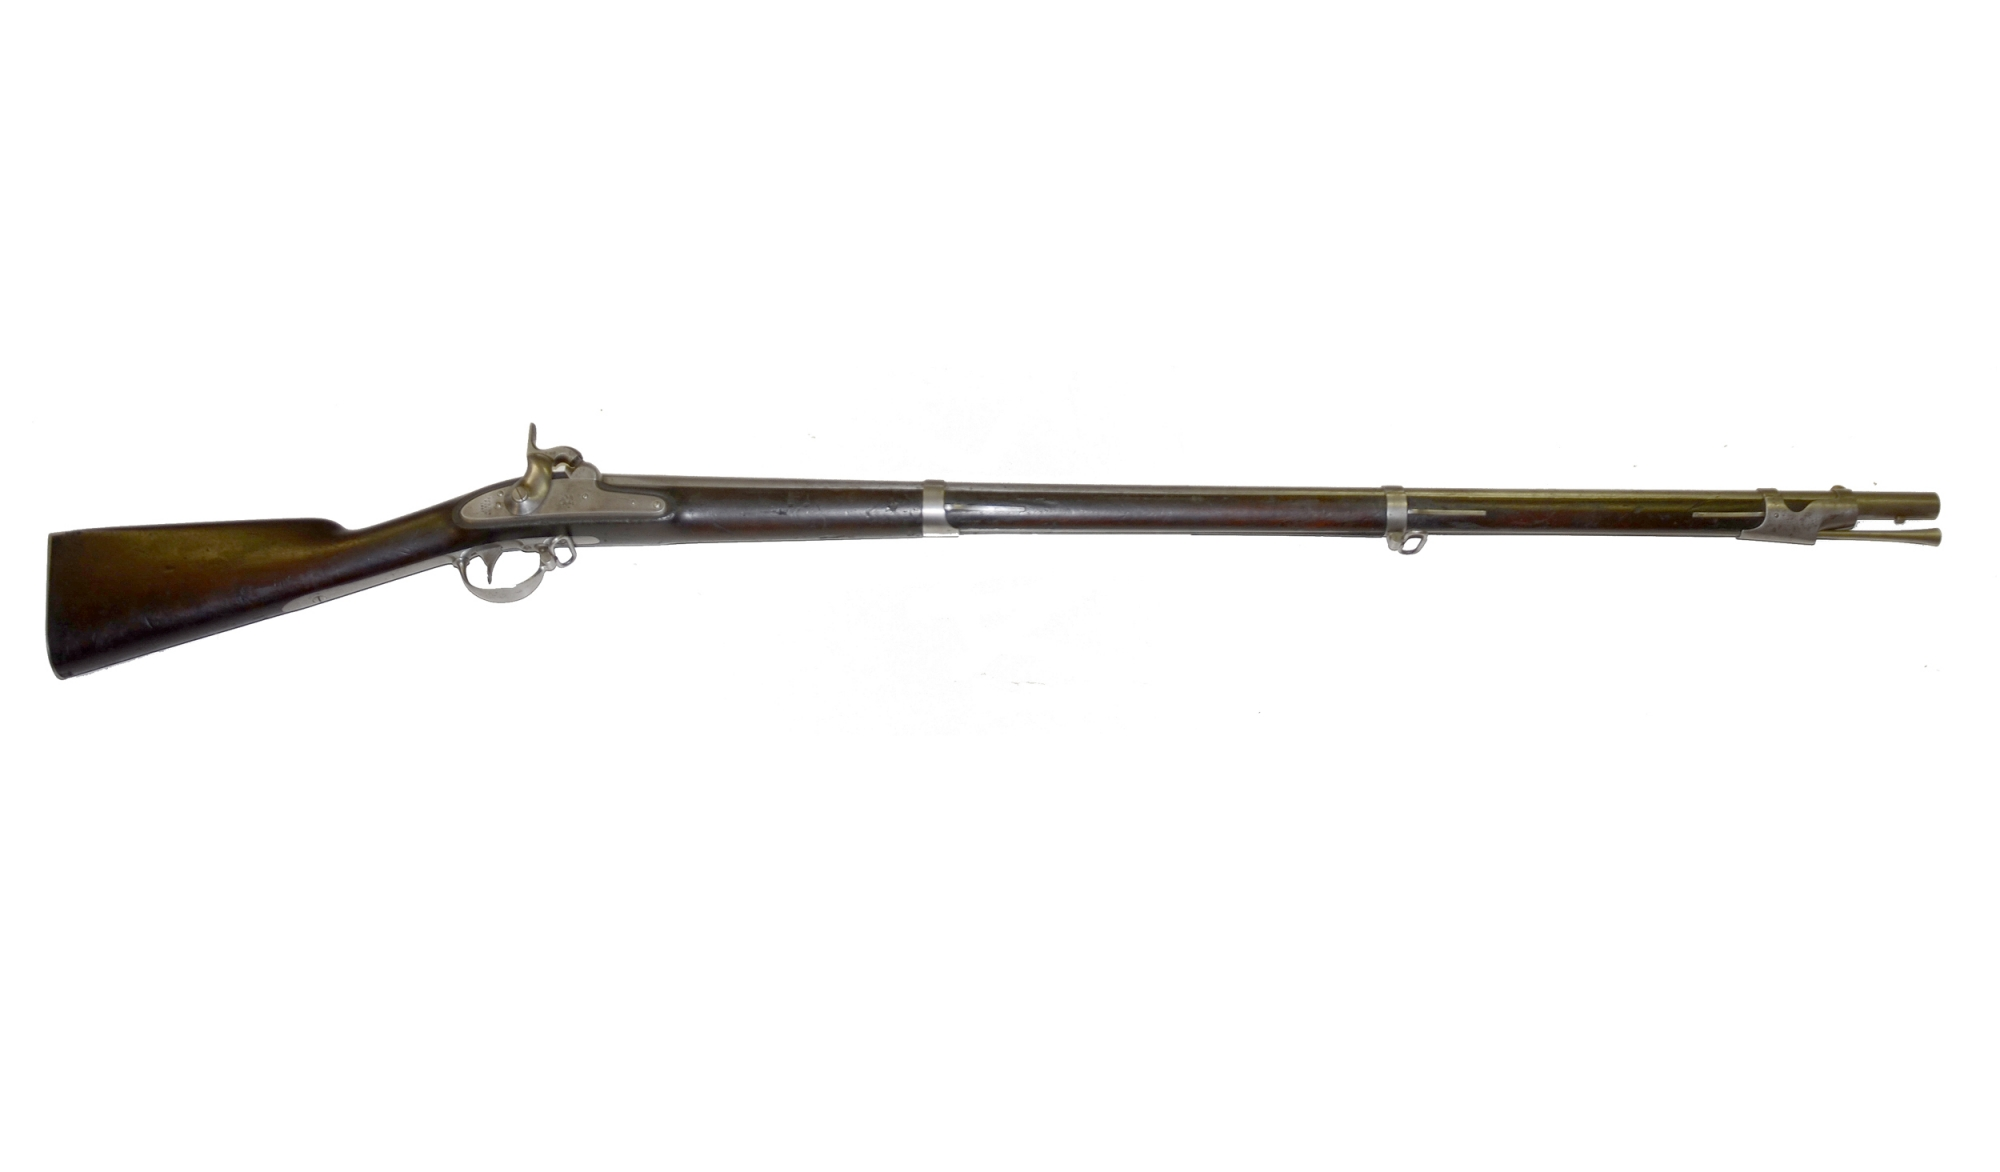 SPRINGFIELD M1842 U.S. PERCUSSION RIFLED MUSKET